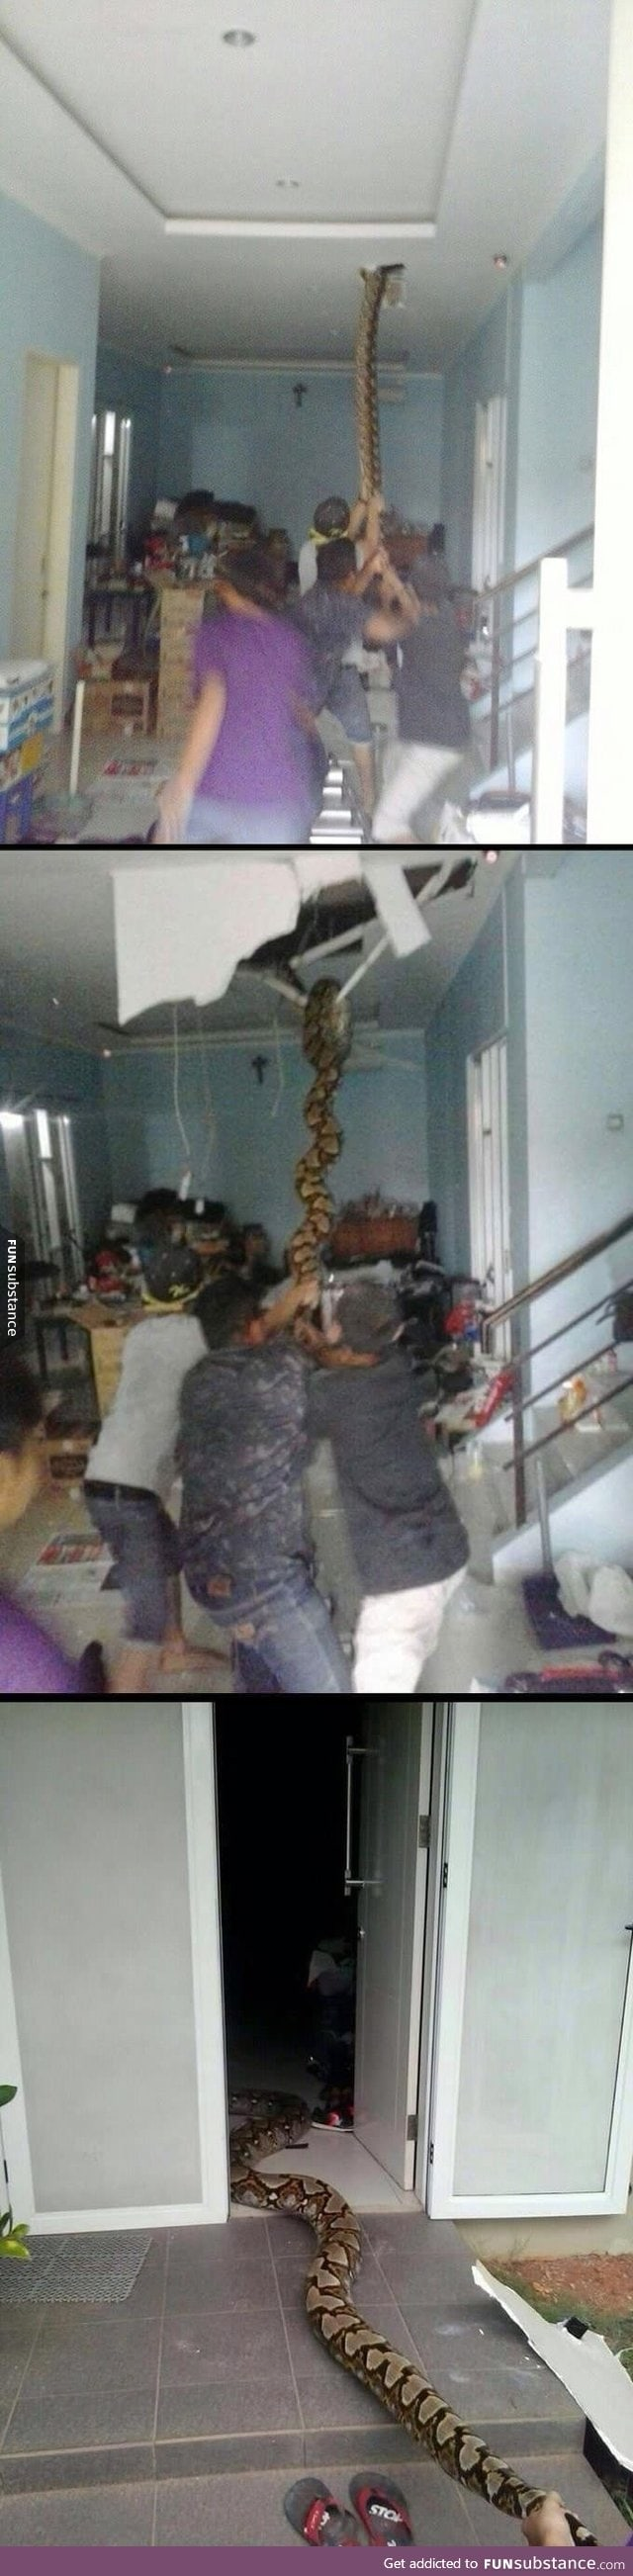 Snake pulled from the ceiling